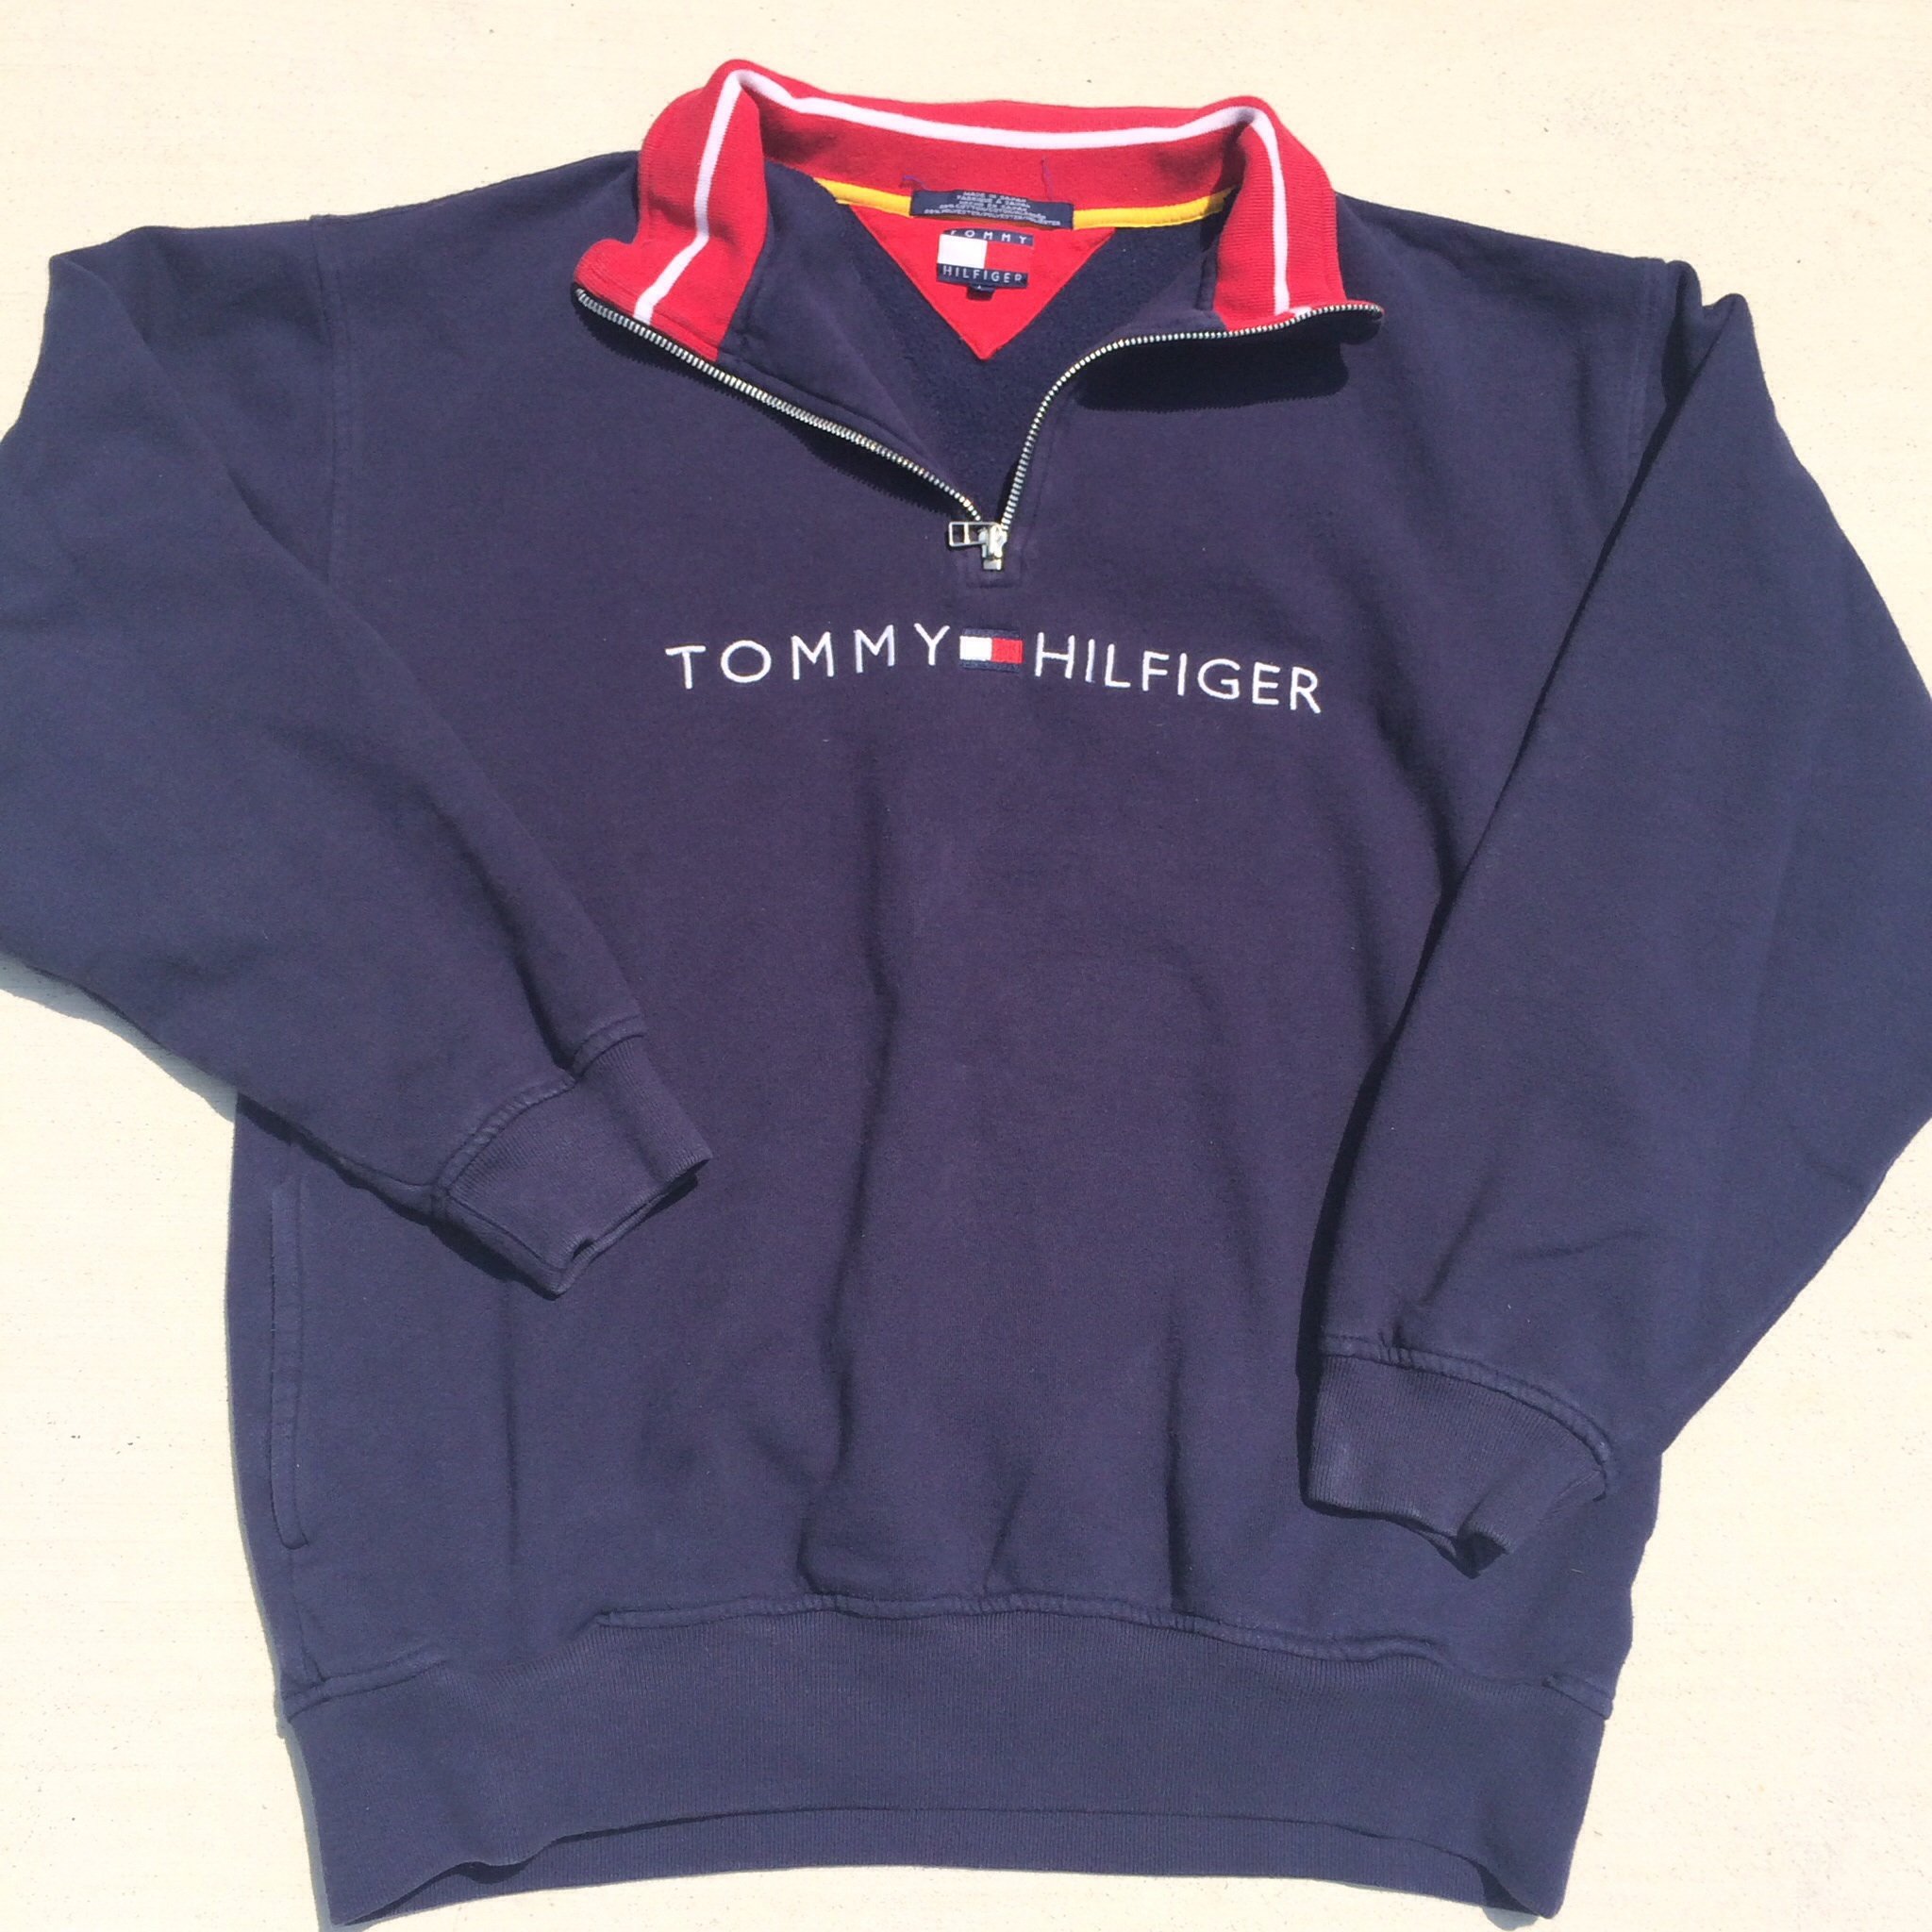 sold out vintage tommy hilfiger pullover sweatshirt on storenvy